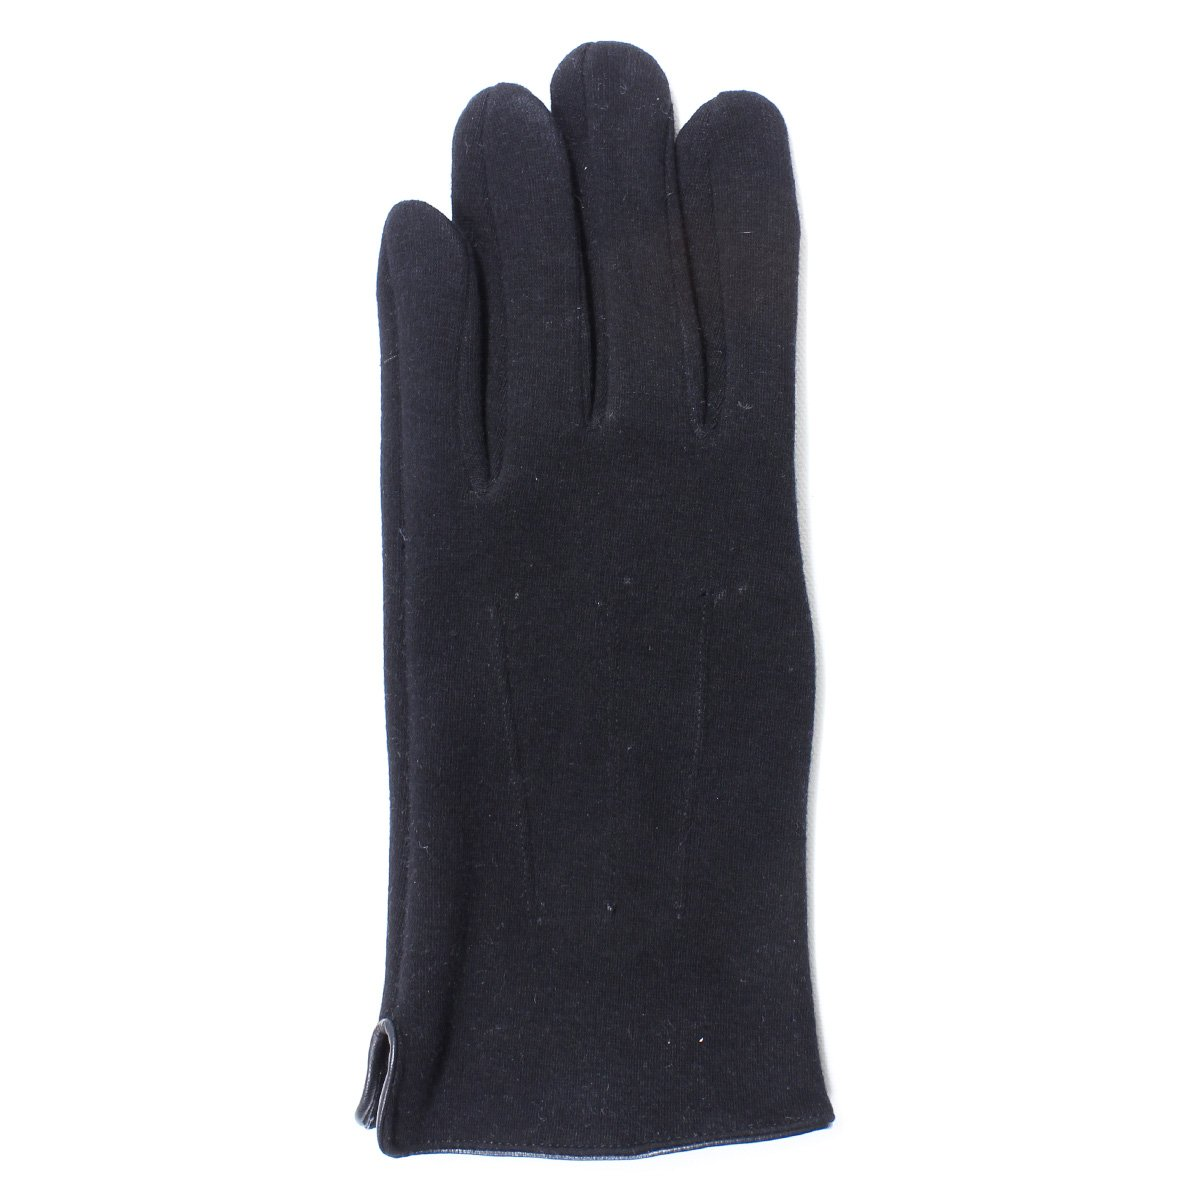 LL- Mens Warm Touch Screen Gloves for Smartphone Texting- Fleece Lined, Midweight (Medium/Large, Black)